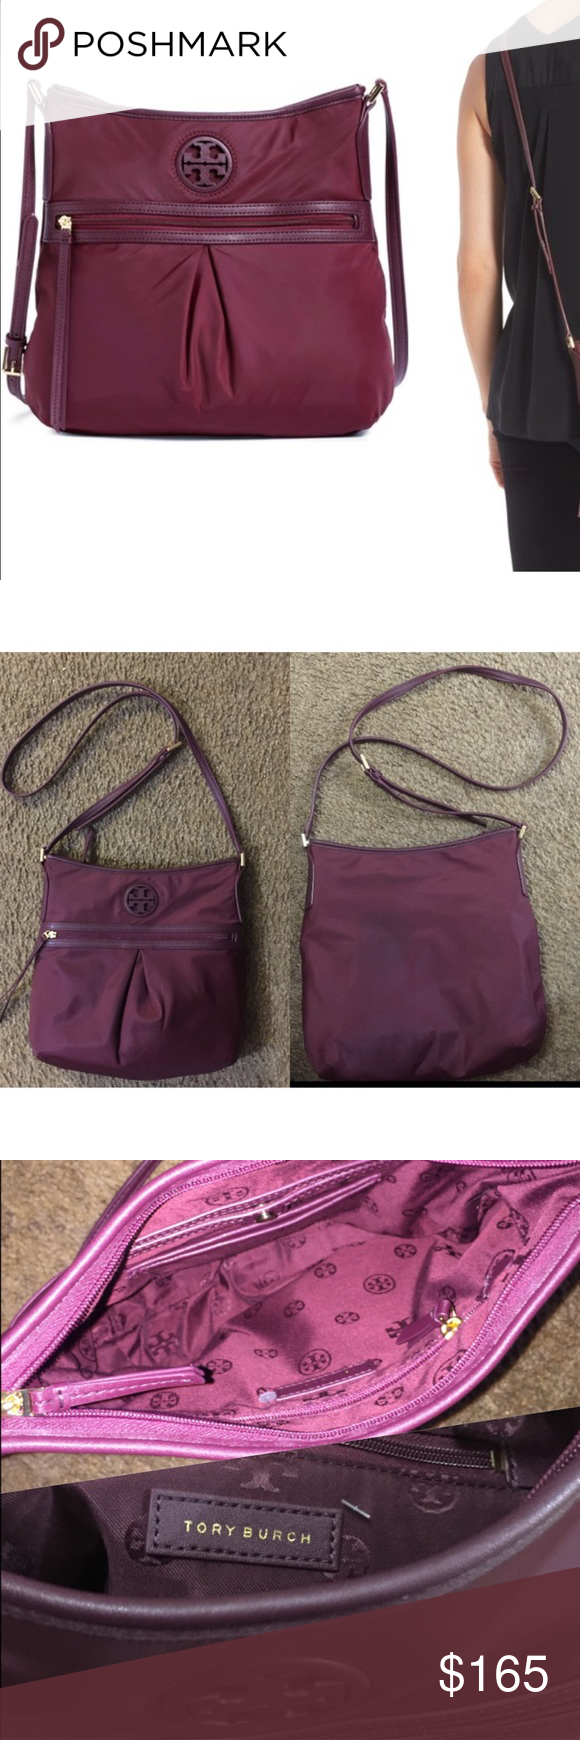 """Tory Butch ella nylon swingpack With its sport-inspired silhouette, durable webbed strap and nylon construction, this swingpack from Tory Burch is sure to become a go-to favorite in your collection. Worn once, like new. 11 ½""""W x 10""""H x 2 ¾""""D. (Interior capacity: small.)21 ¼"""" - 23 ½"""" crossbody strap drop. .5 lbs.Top zip closure. Adjustable crossbody strap. Exterior zip pocket. Interior zip pocket. Lined. Nylon. By Tory Burch; imported. Handbags. Msrp Nordstrom $225.00, selling it for $165…"""